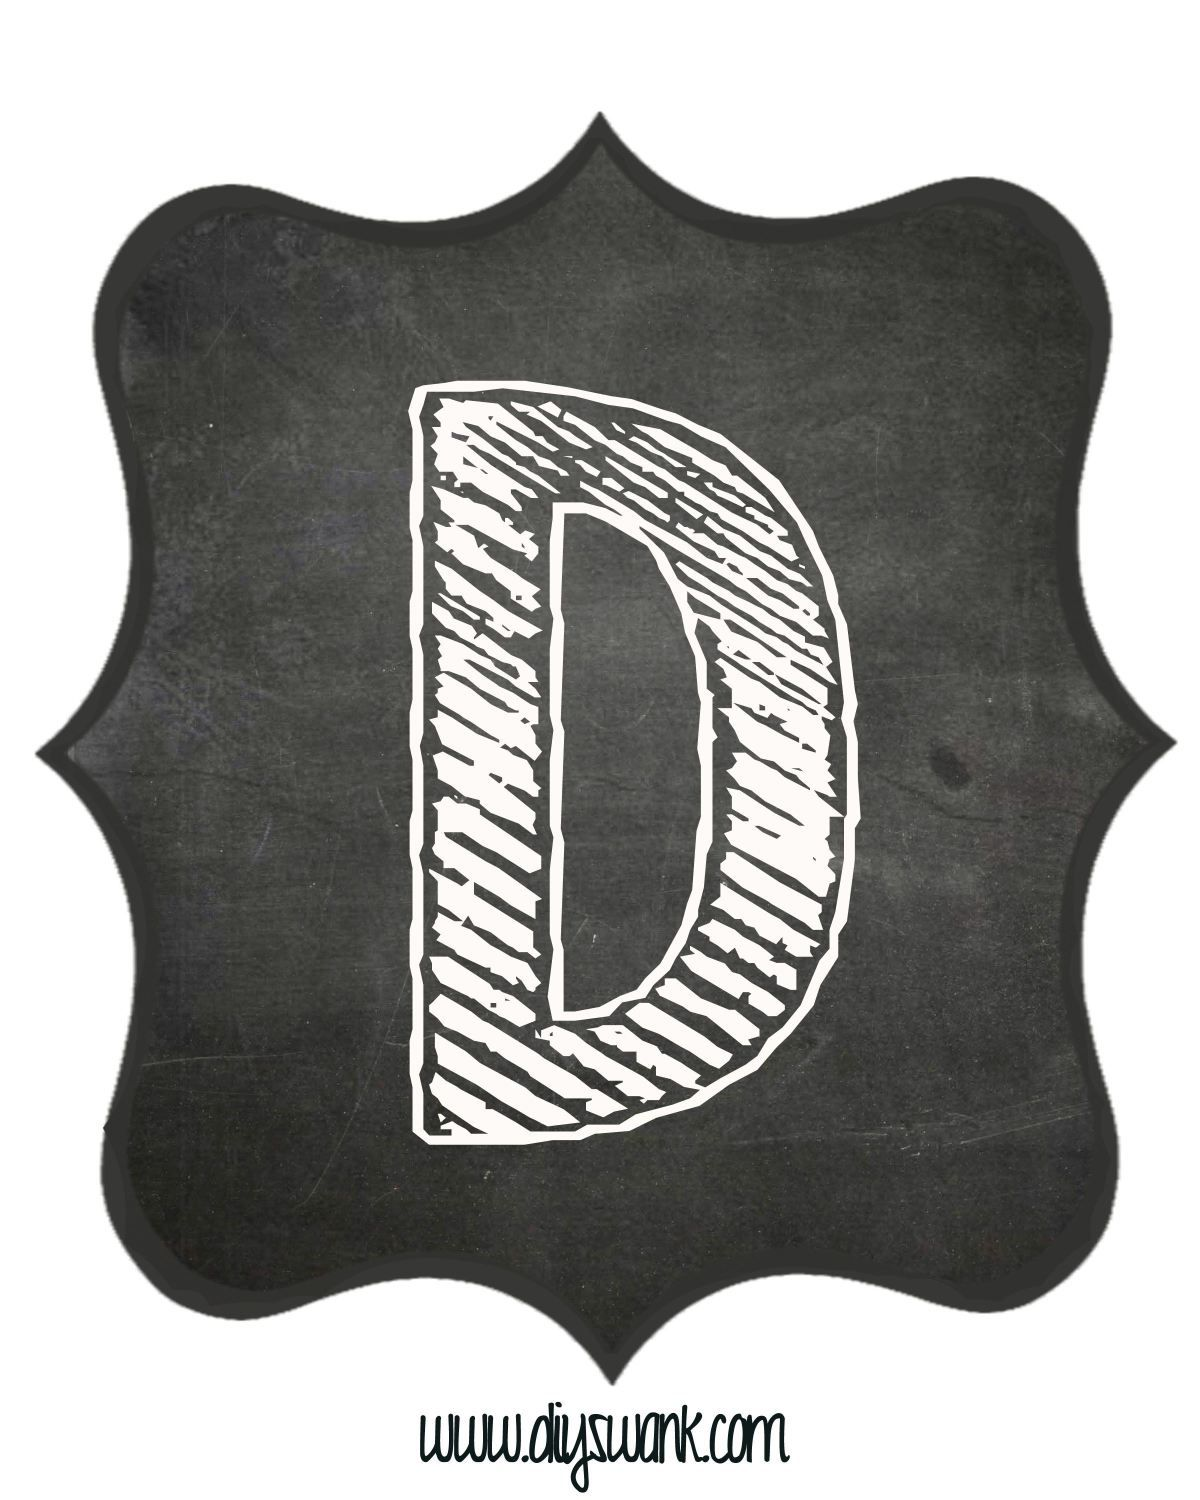 Free Printable Letters For Banners is part of Free printable letters, Printable banner letters, Chalkboard lettering, Printable letters, Printables, Chalkboard paper - Free Printable Letters for Banners  Tons of styles to choose from  Each set includes all letters, number and additional characters